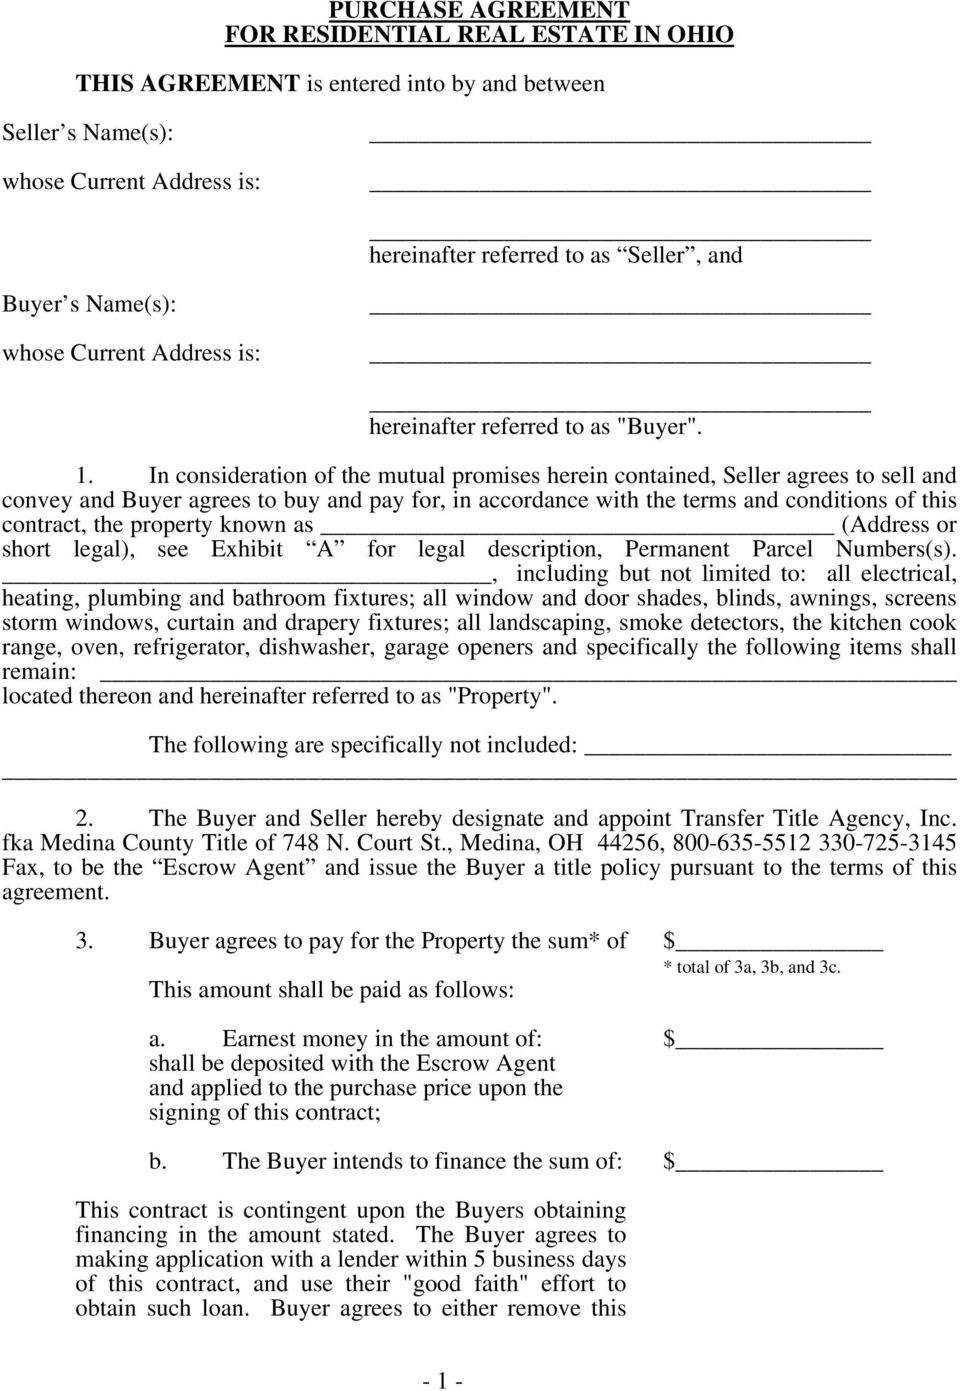 Purchase Agreement For Residential Real Estate In Ohio This